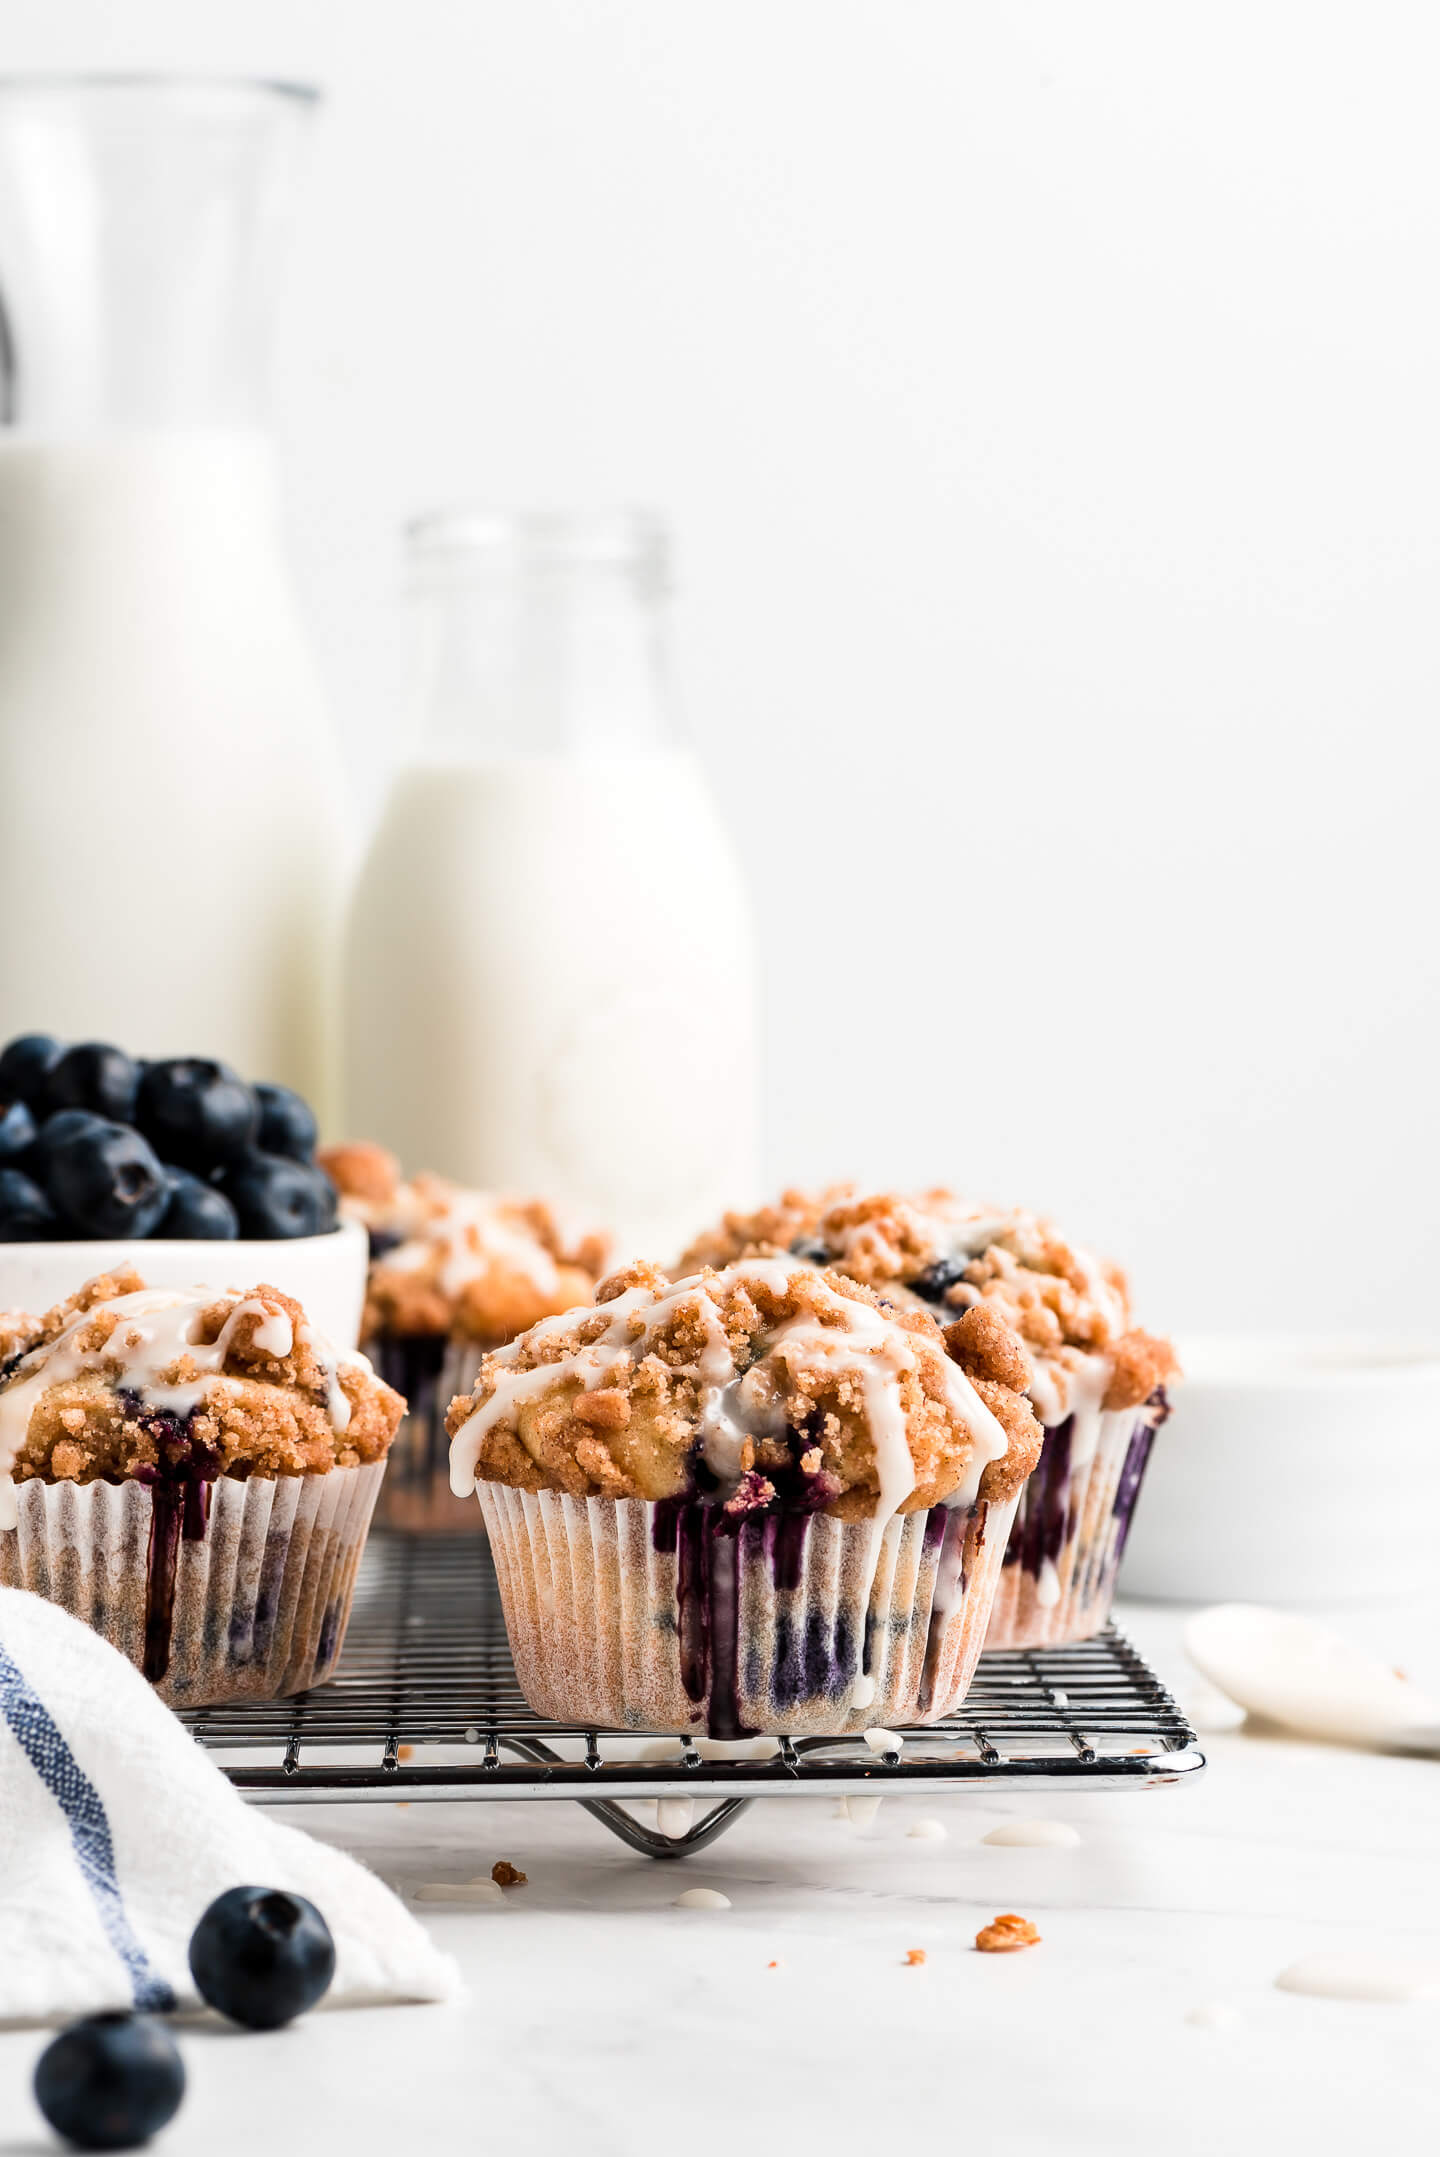 Muffins on a cooling rack with glaze dripping down them and glass bottles of milk in the background.